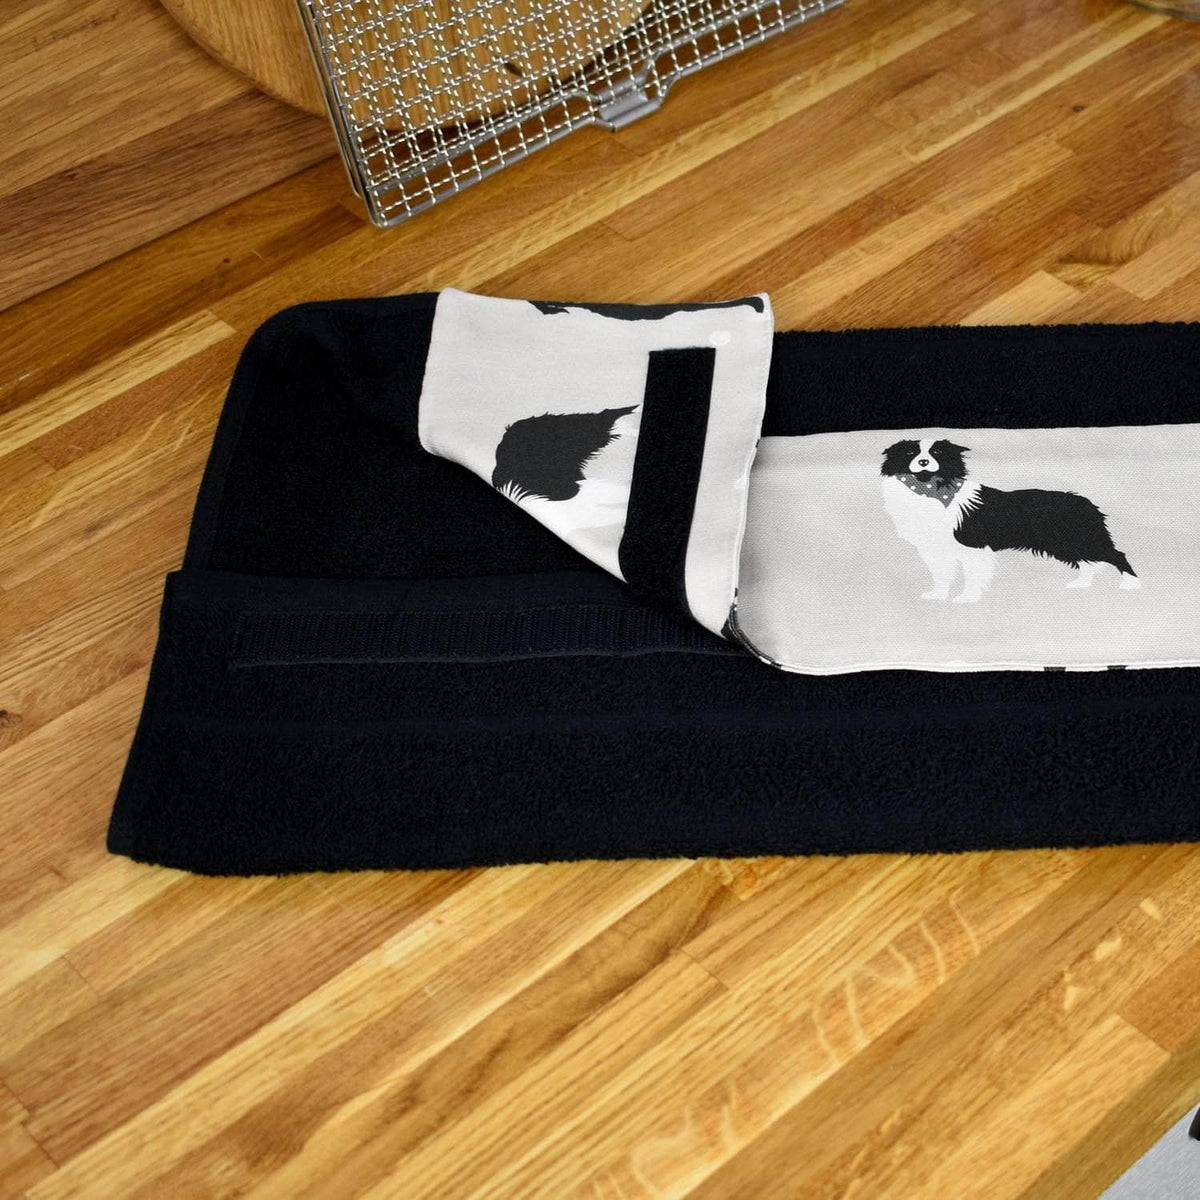 *New* Narrow (32 cm) hanging towel with velcro attachment - 'Good dog!'